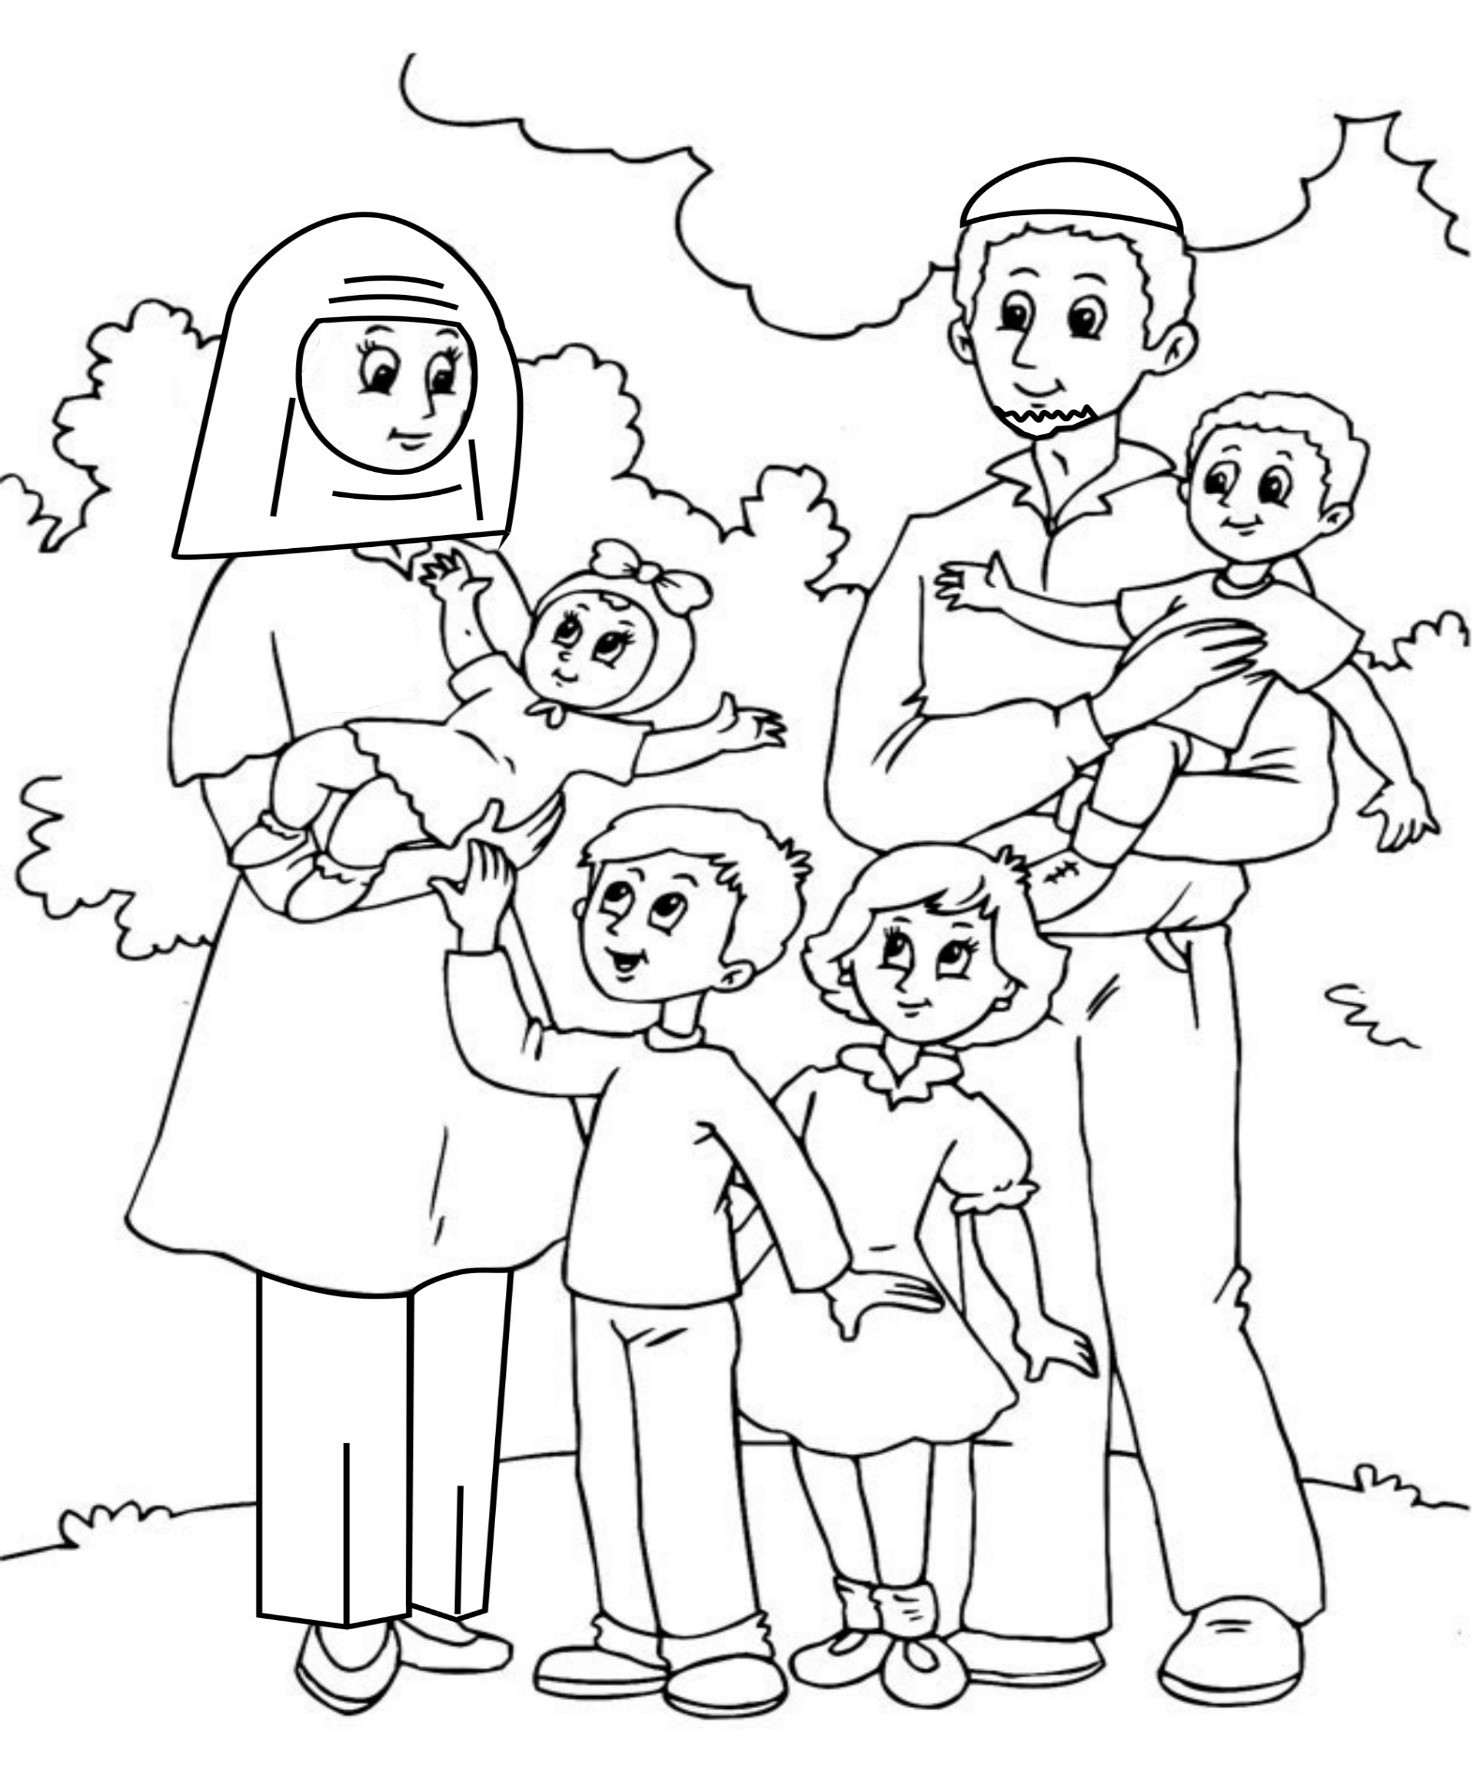 children coloring pages of families - photo#22